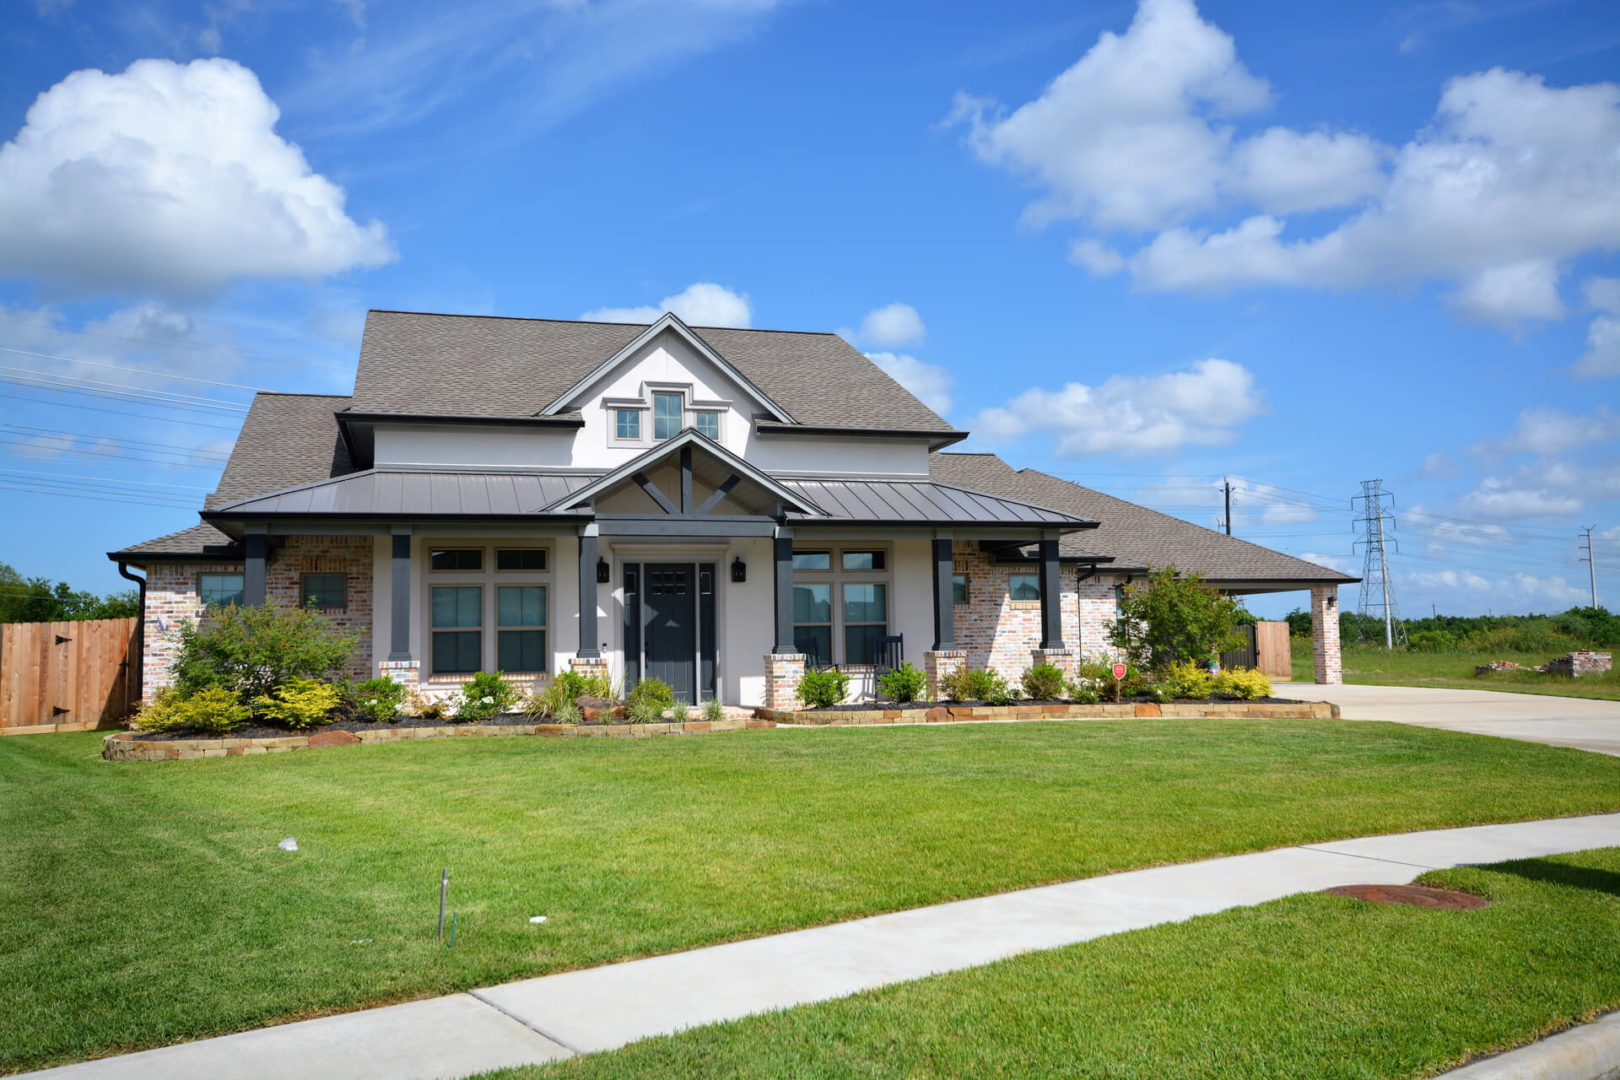 House In Home Owners Association In Plano Texas